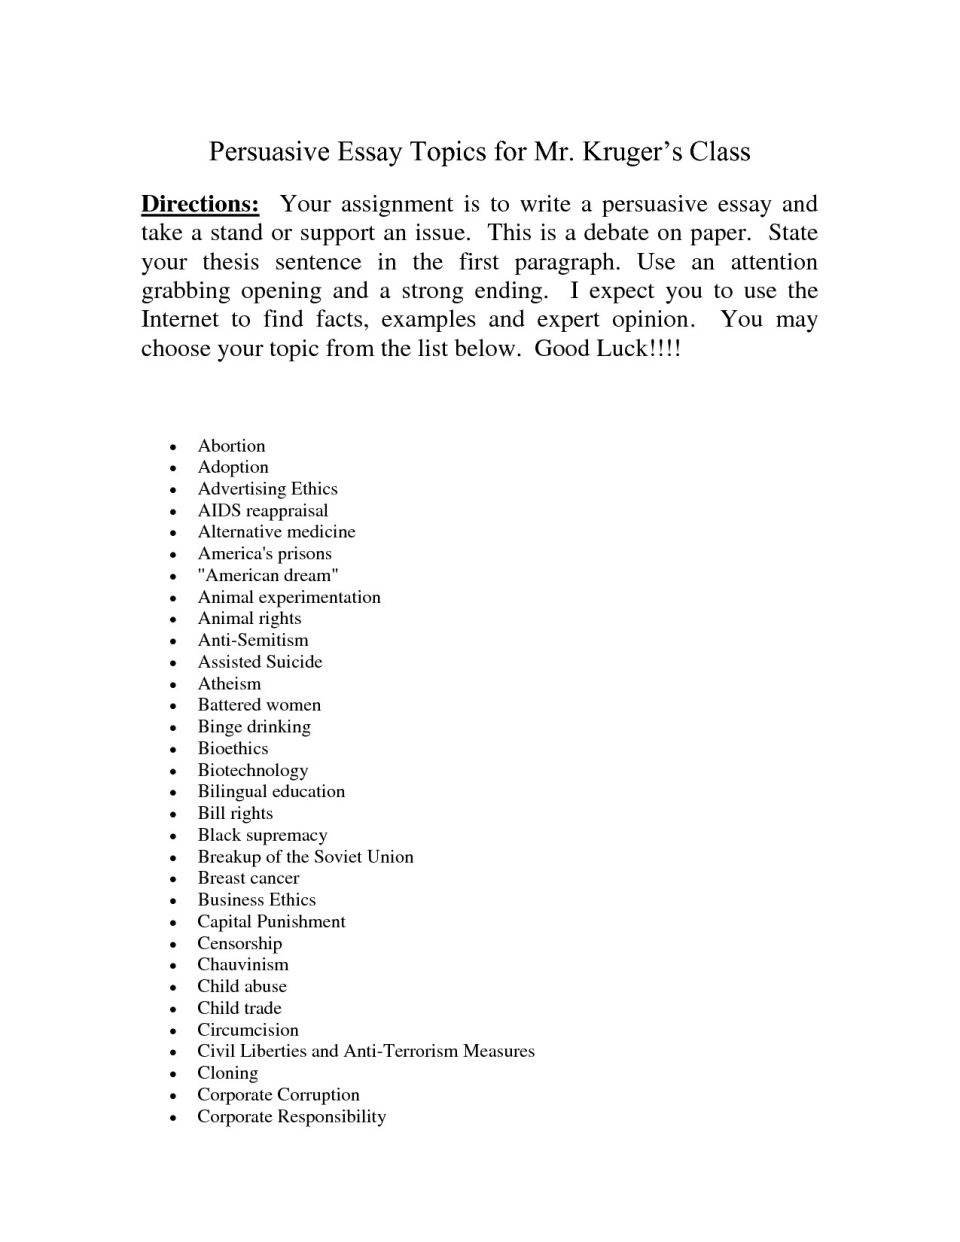 016 Topic For Essay Barca Fontanacountryinn Within Good Persuasive Narrative Topics To Write Abo Easy About Personal Descriptive Research Paper Informative Synthesis College 960x1242 Magnificent Great Papers World History Interesting Economic Full